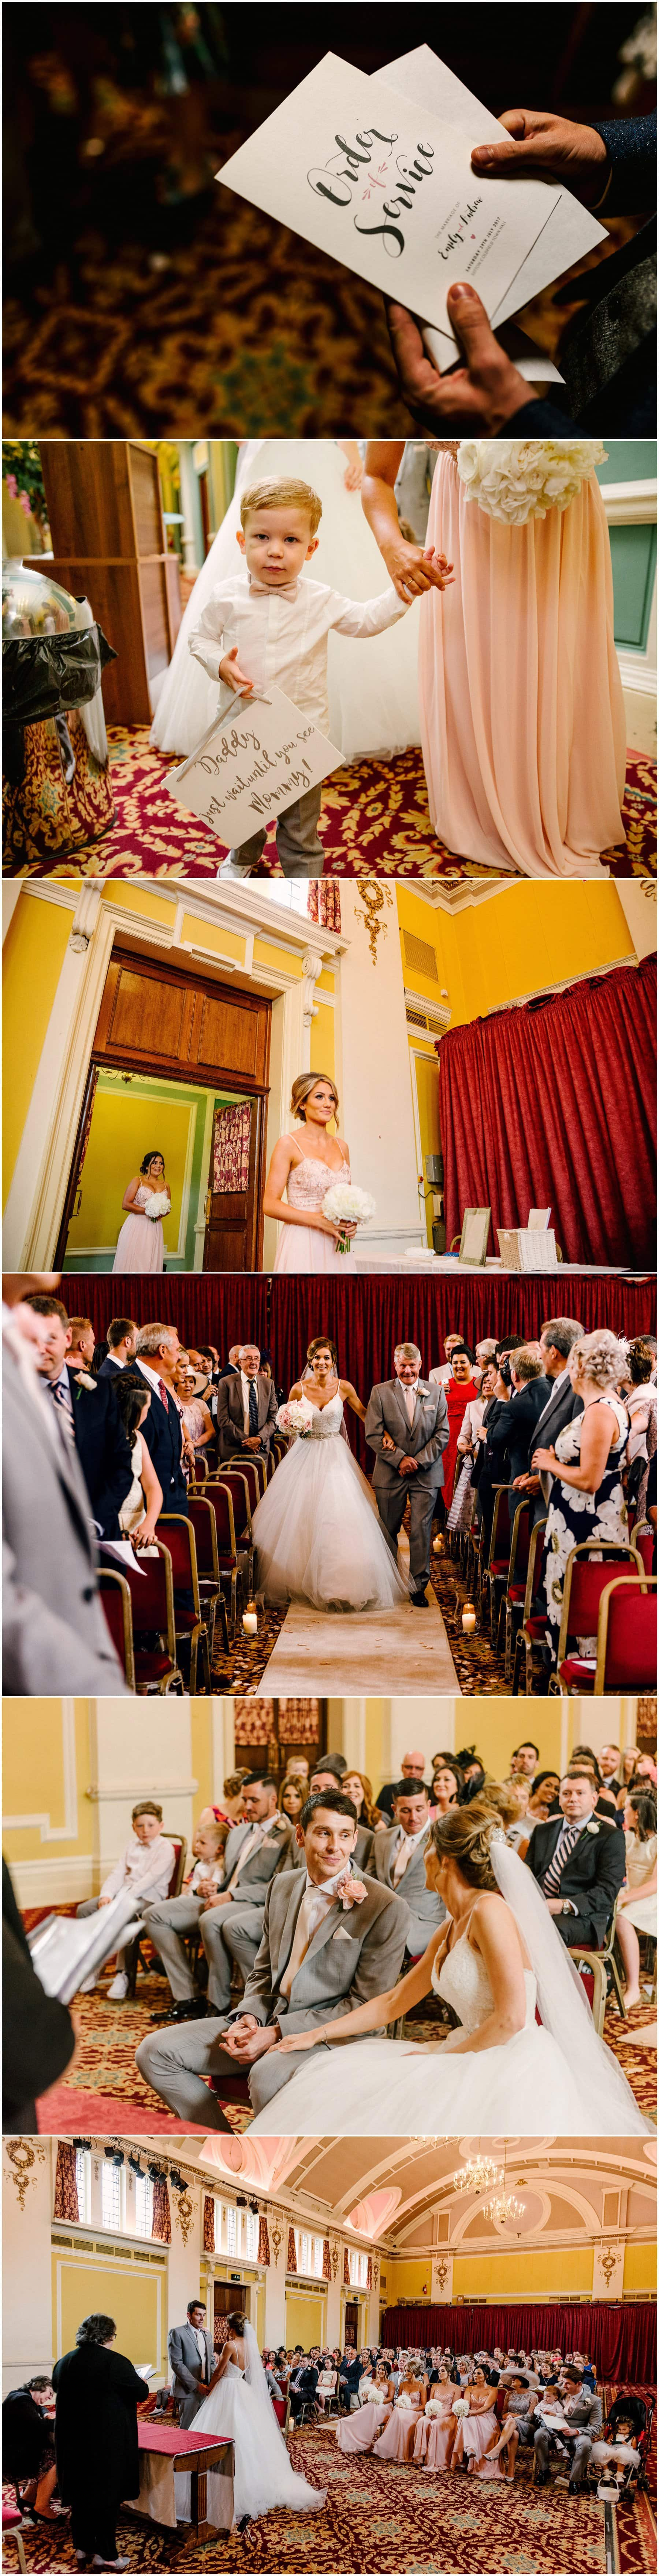 Emily and Andrew's Moxhull Hall Wedding in Sutton Coldfield with ceremony at Sutton Coldfield Town Hall.